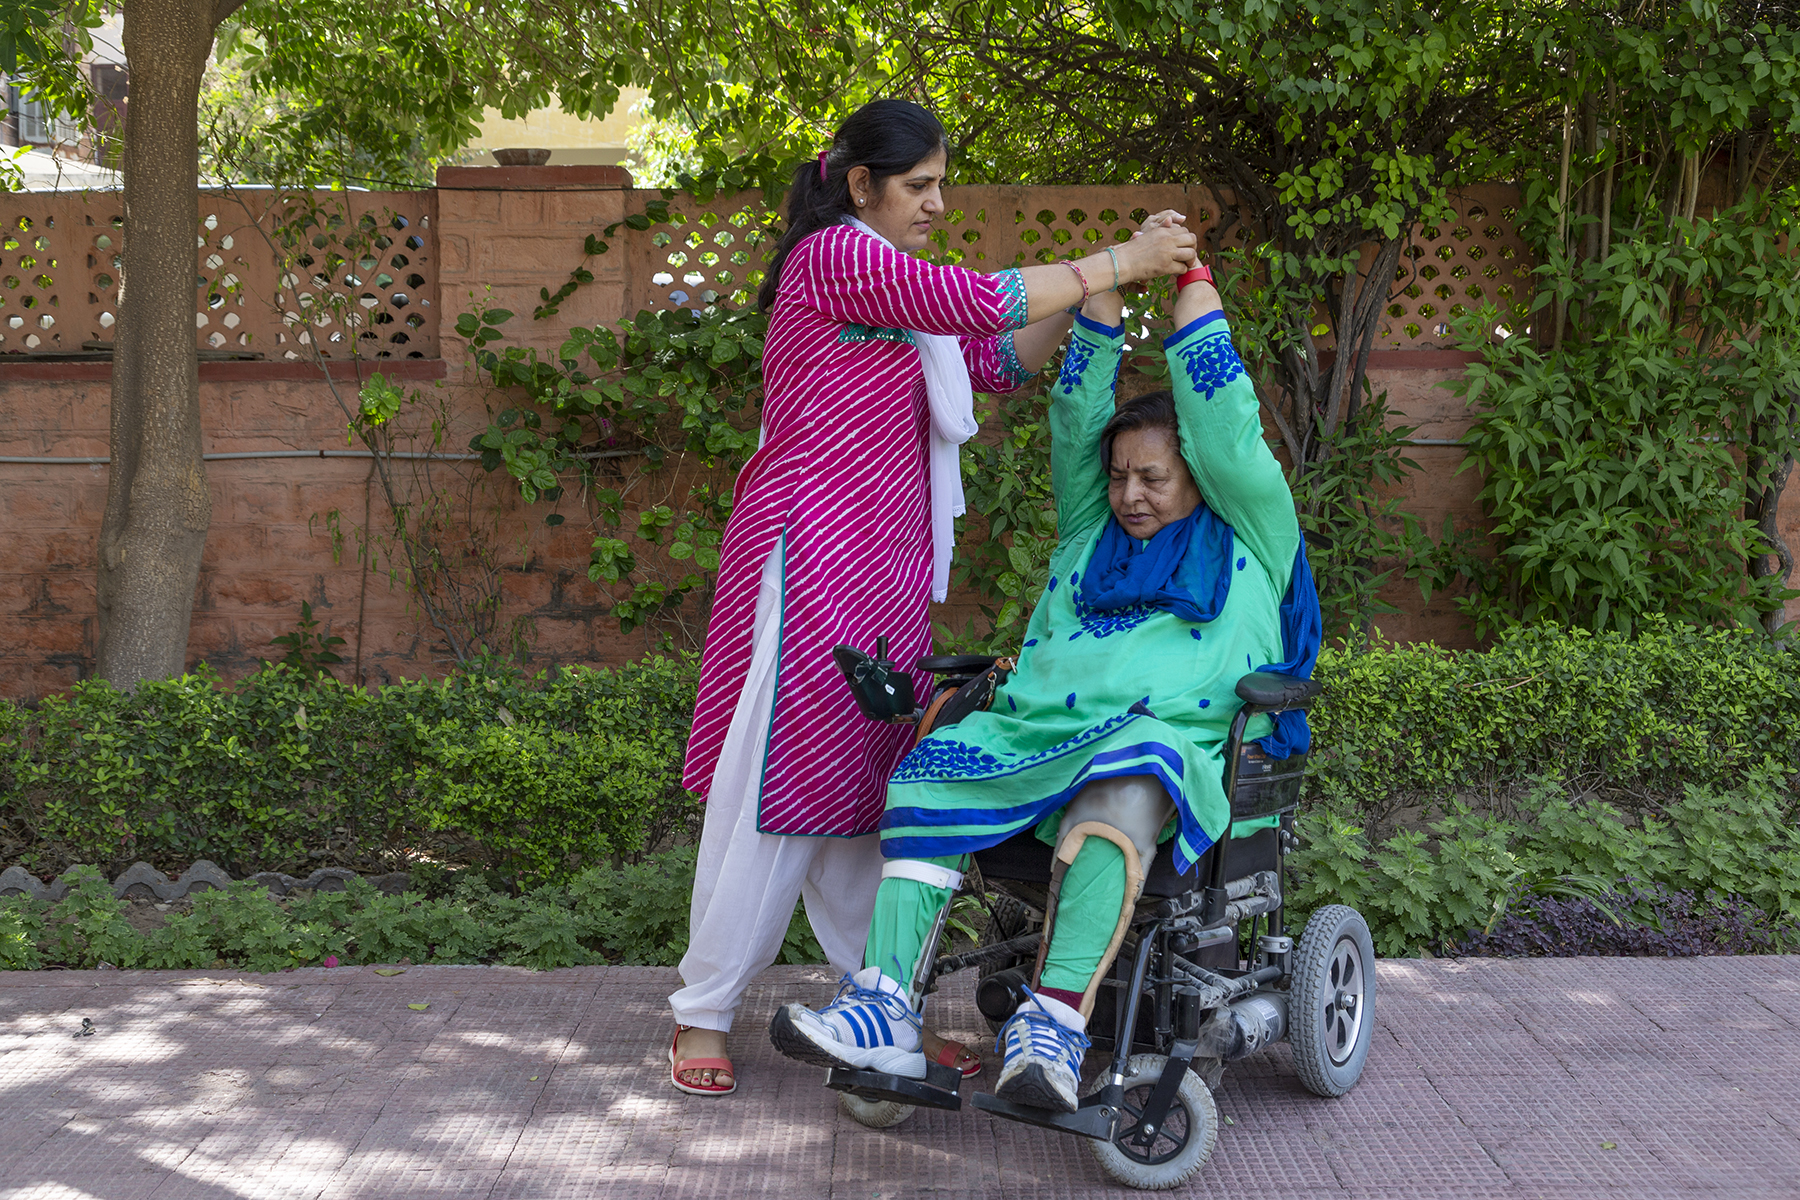 Kusumlata in her wheelchair is exercising in the garden with the help of her student Nirmala Bishnoy. Behind them is a terracotta-colour brick compound wall. Between them and the wall is a hedge of non-flowering plants about a foot high. Nirmala is holding up both of Kusumlata's hands high above her head by grasping her wrists. Nirmala wears a white salwar and pink kameez with thin white diagonal stripes and Kusumlata, a royal blue and sea green salwar kameez with a matching blue dupatta.